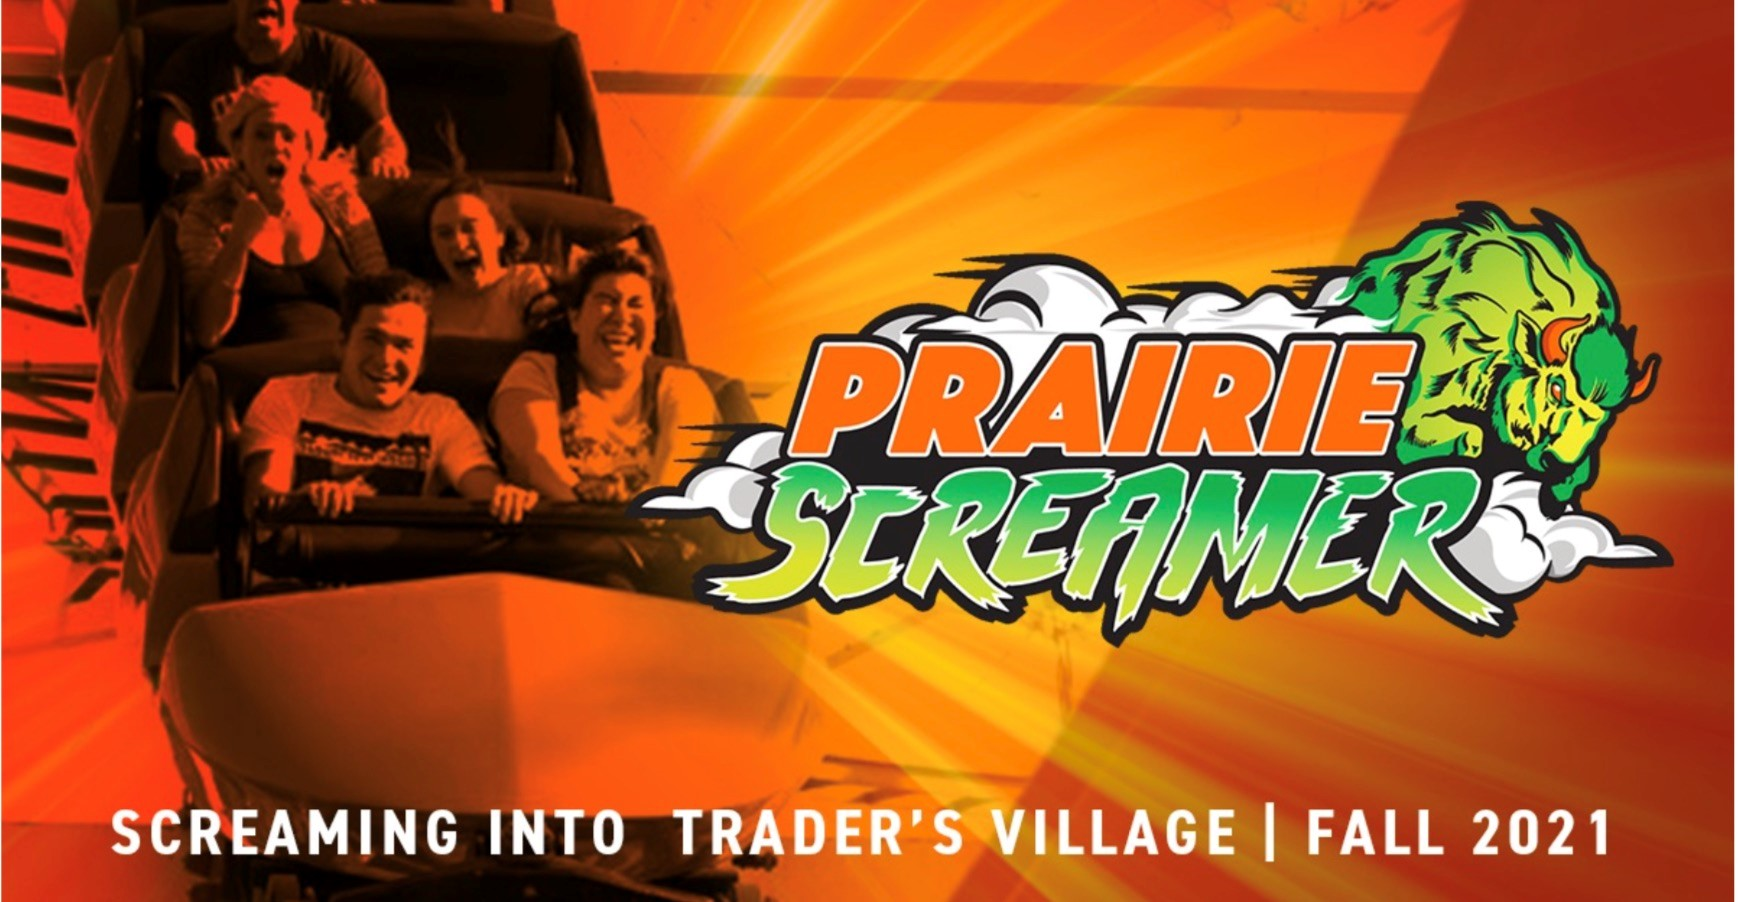 Trader's Village Prairie Screamer